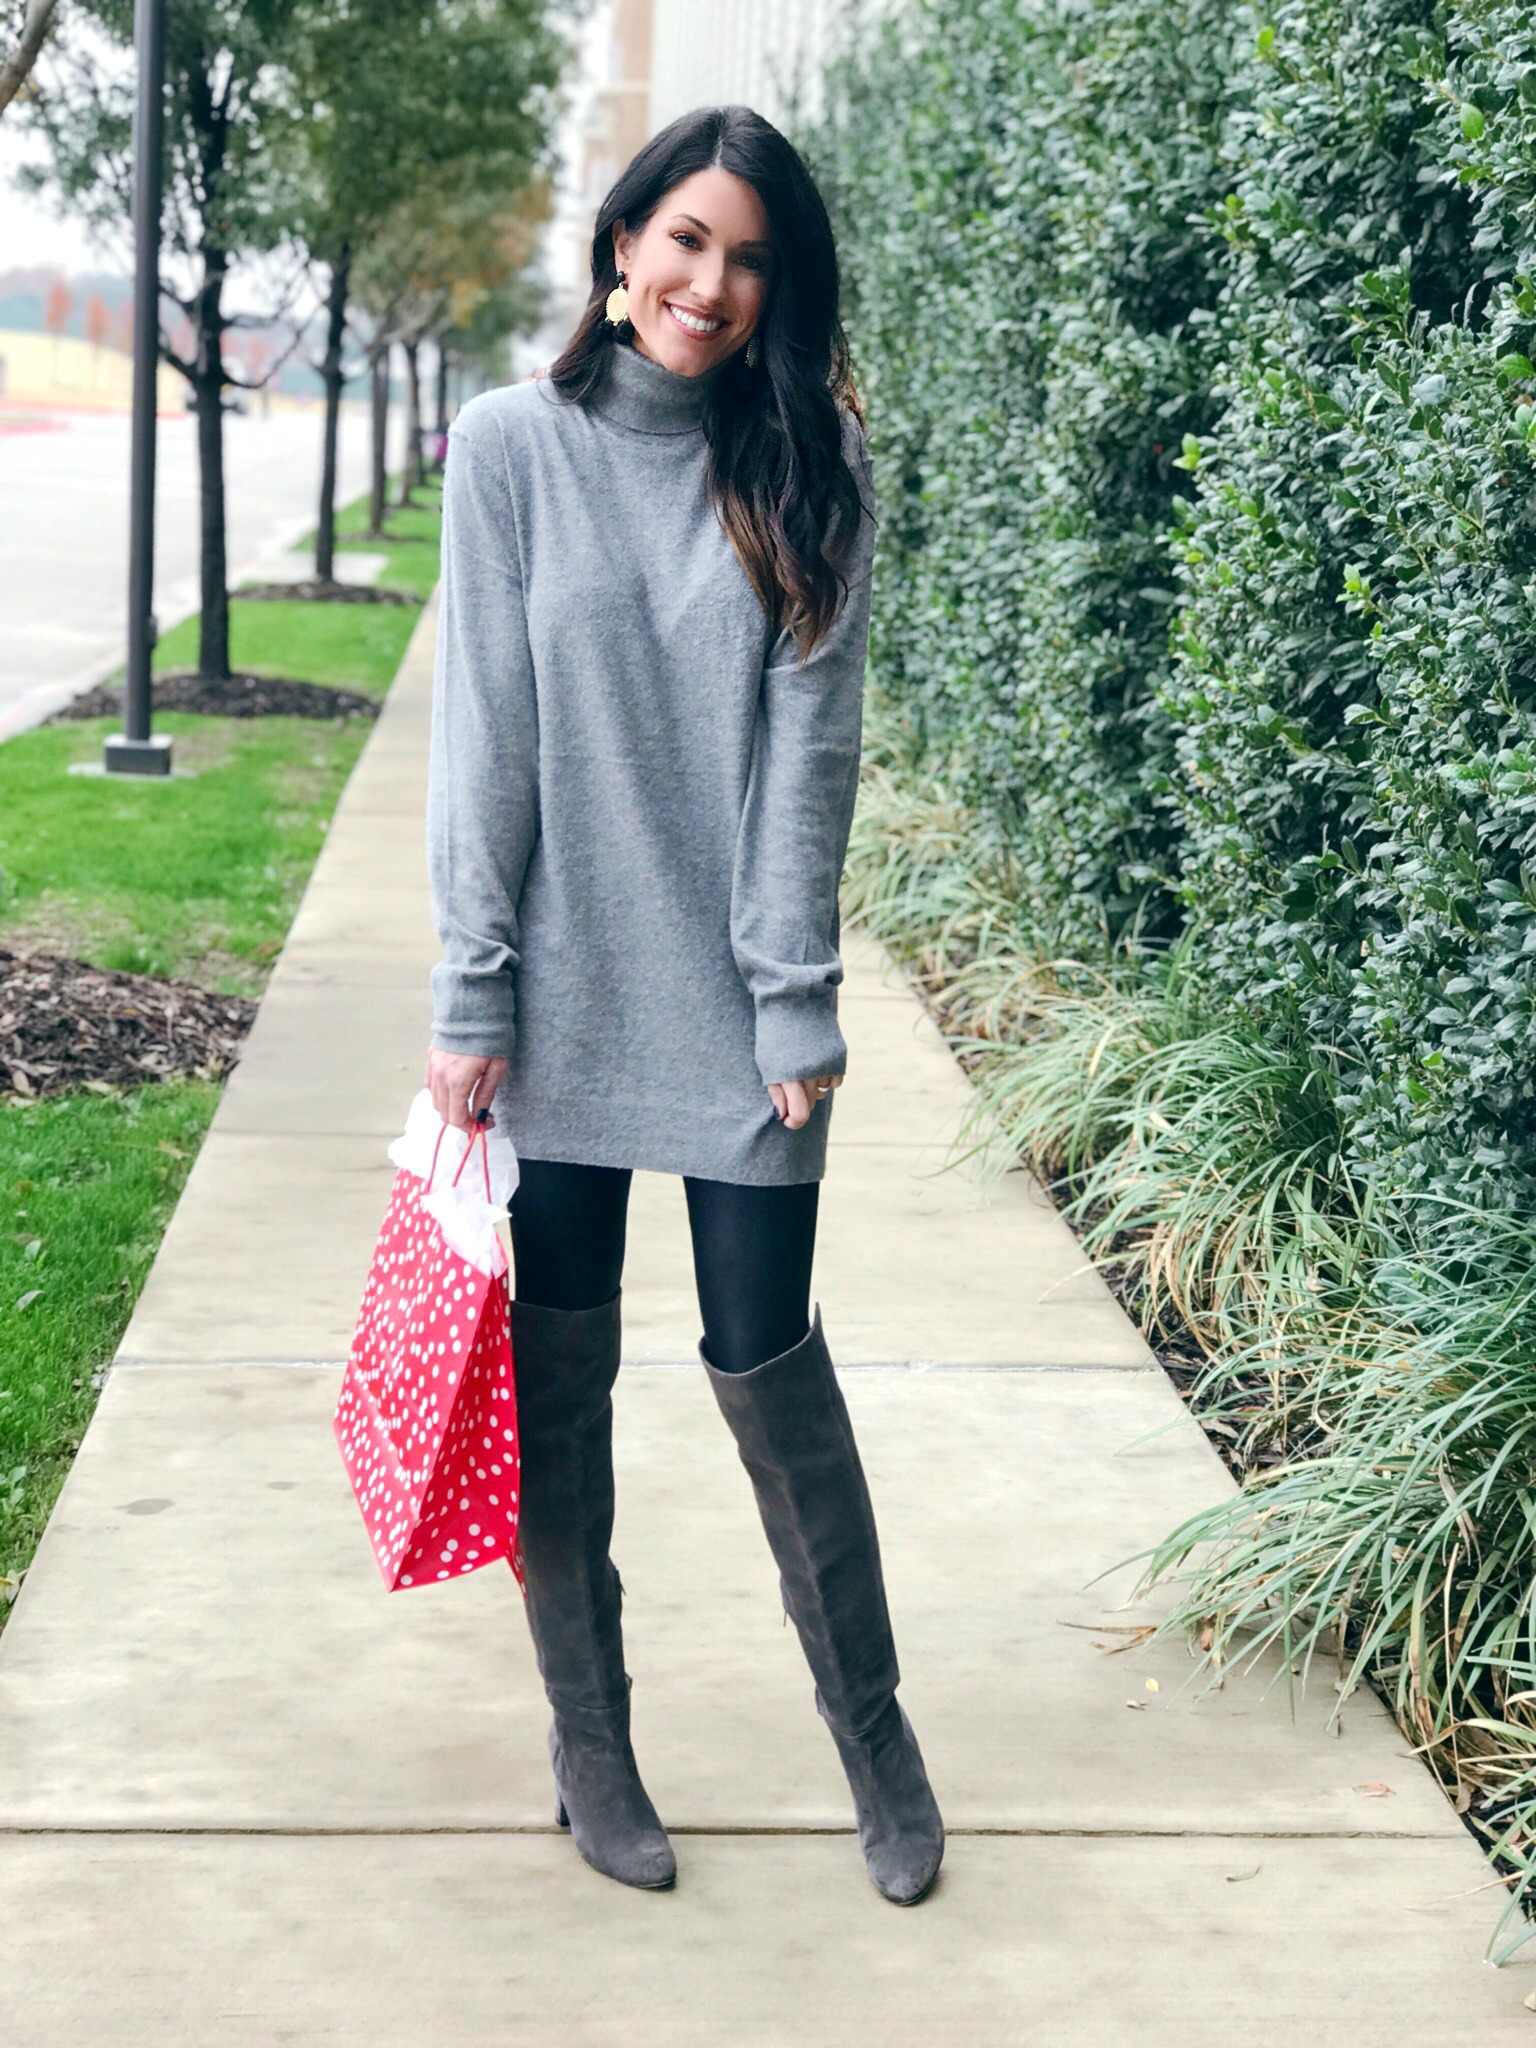 Tunic and Tall Boots